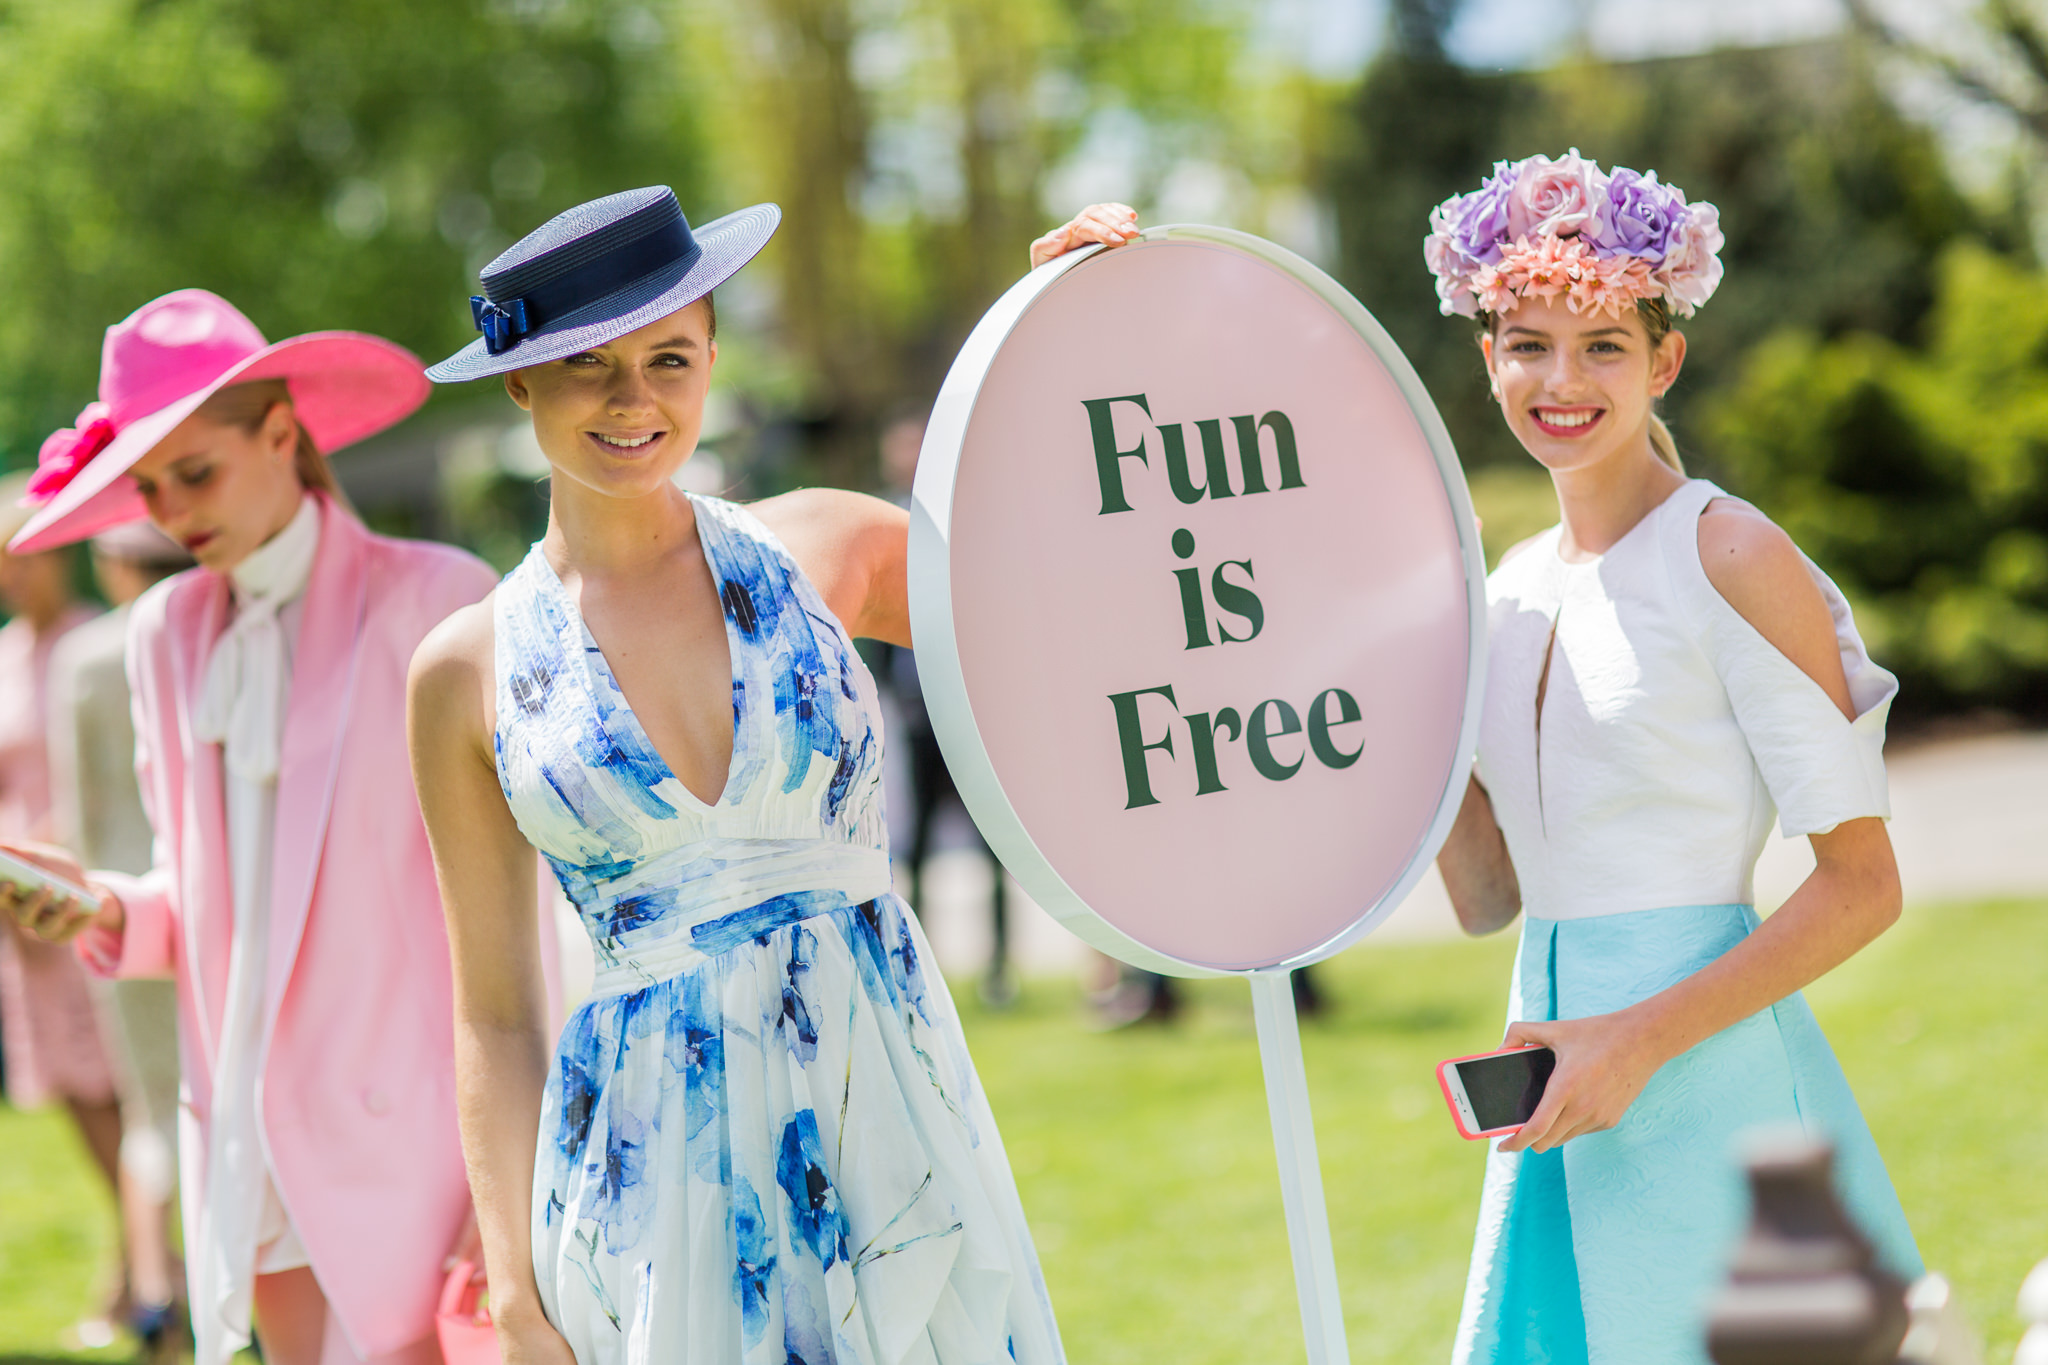 fun is free - melbourne cup fashion models